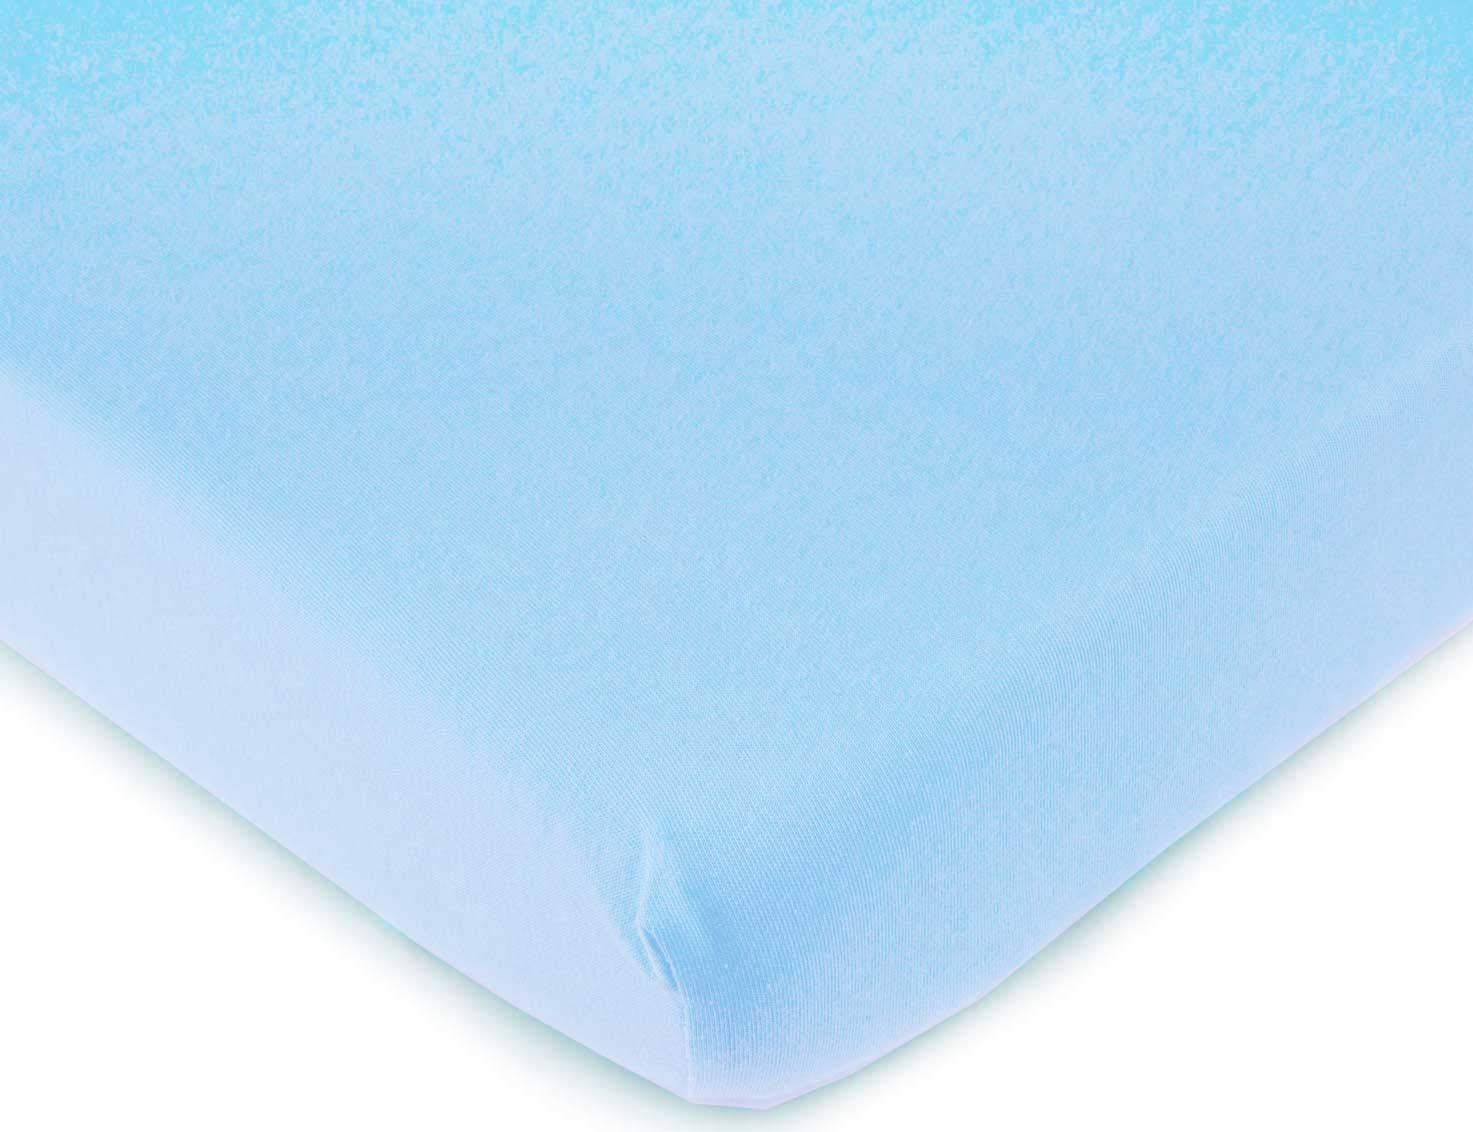 SheetWorld Fitted 100% Cotton Jersey Pack N Play Sheet Fits Graco Square Play Yard 36 x 36, Organic Baby Blue, Made In USA